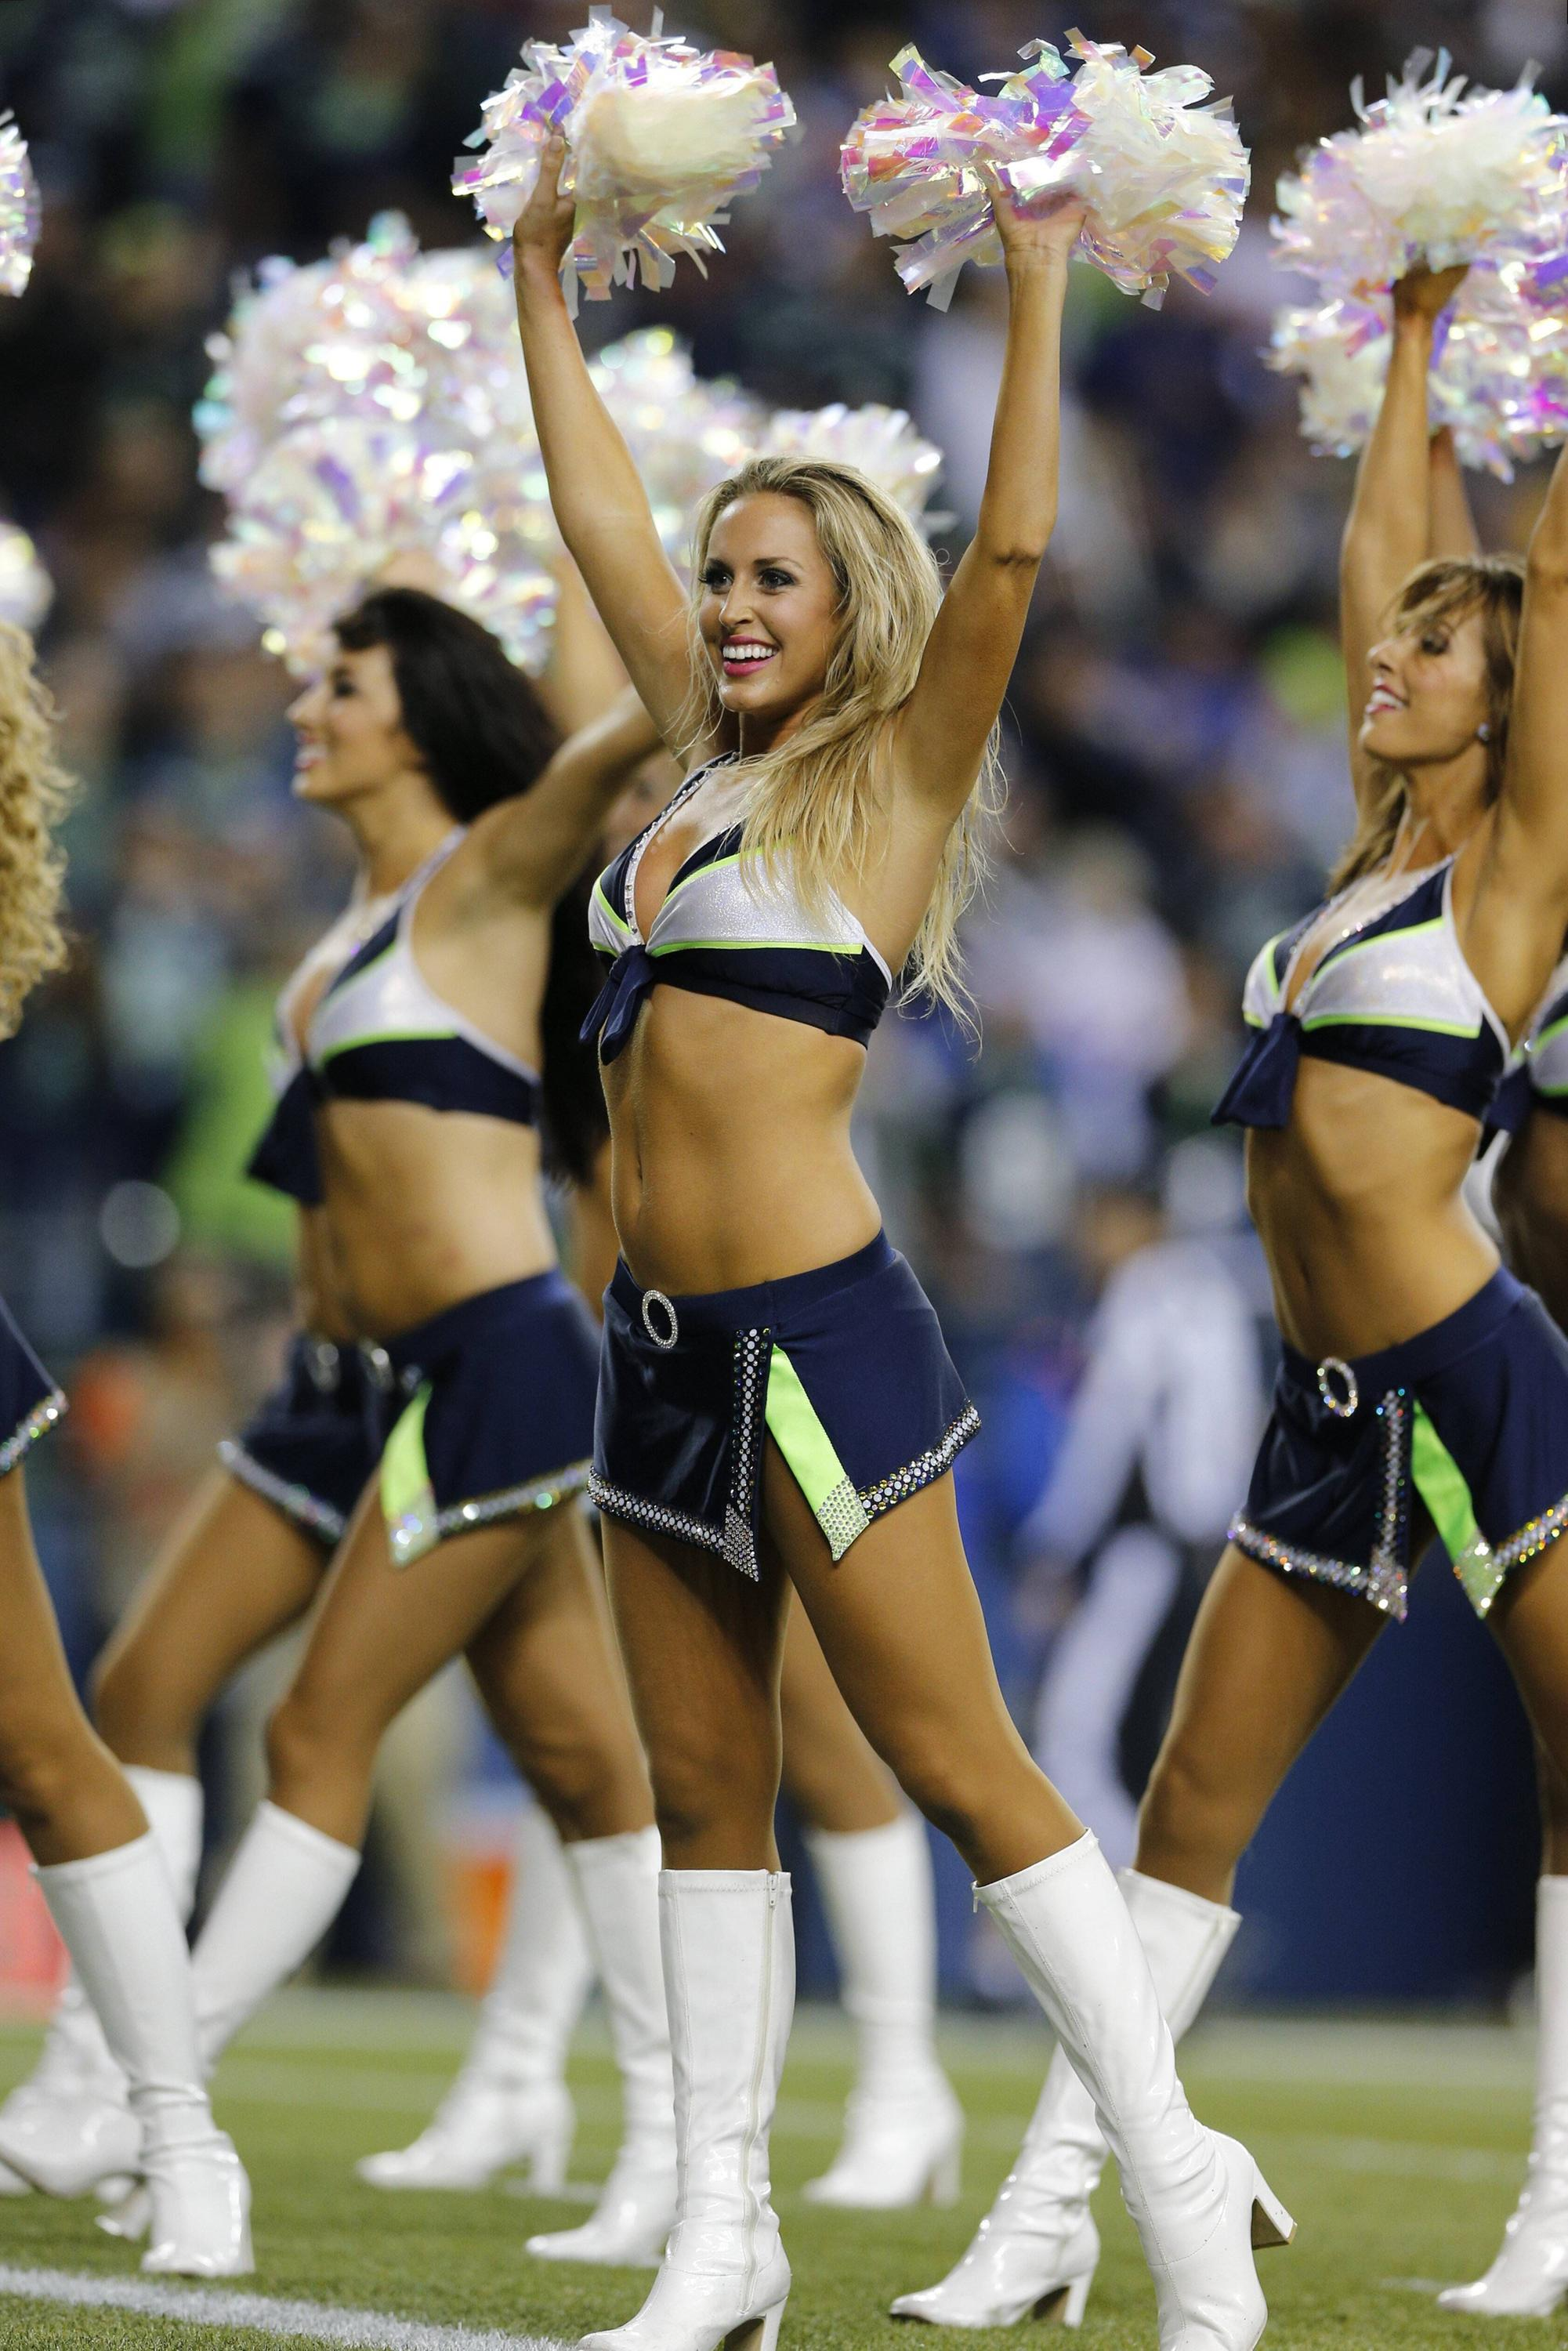 Bild zu Seattle Seahawks, Cheerleader, NFL